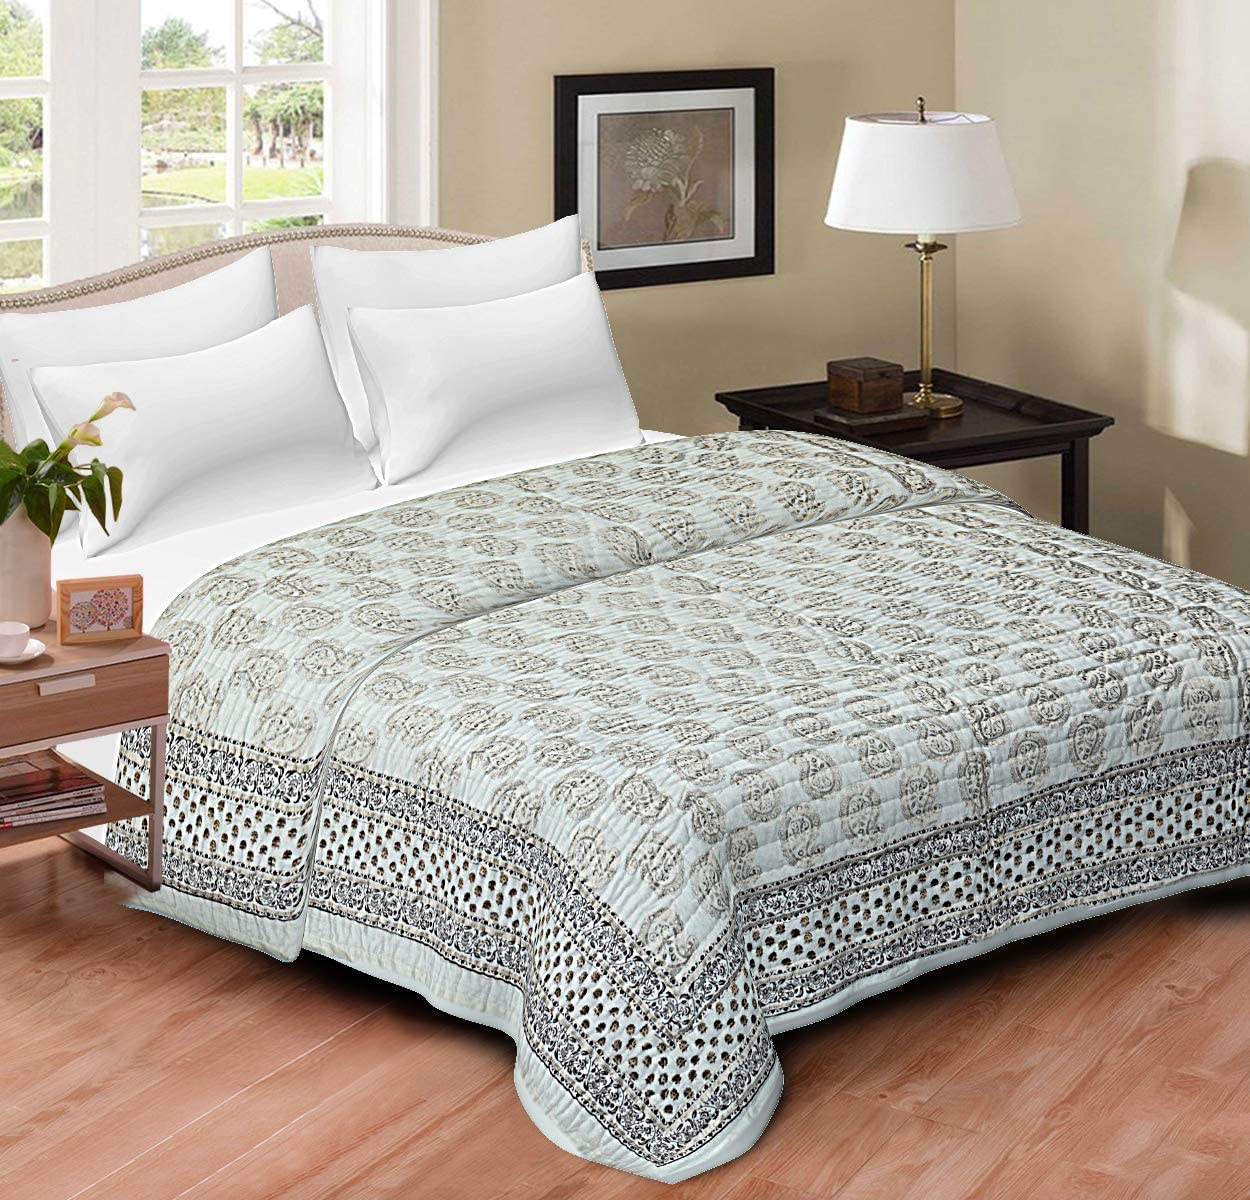 Hand Block Print Quilt Jaipur Razai Printed Bed Quilt Handmade Queen Size Blankets Quilt Home sofa Cover